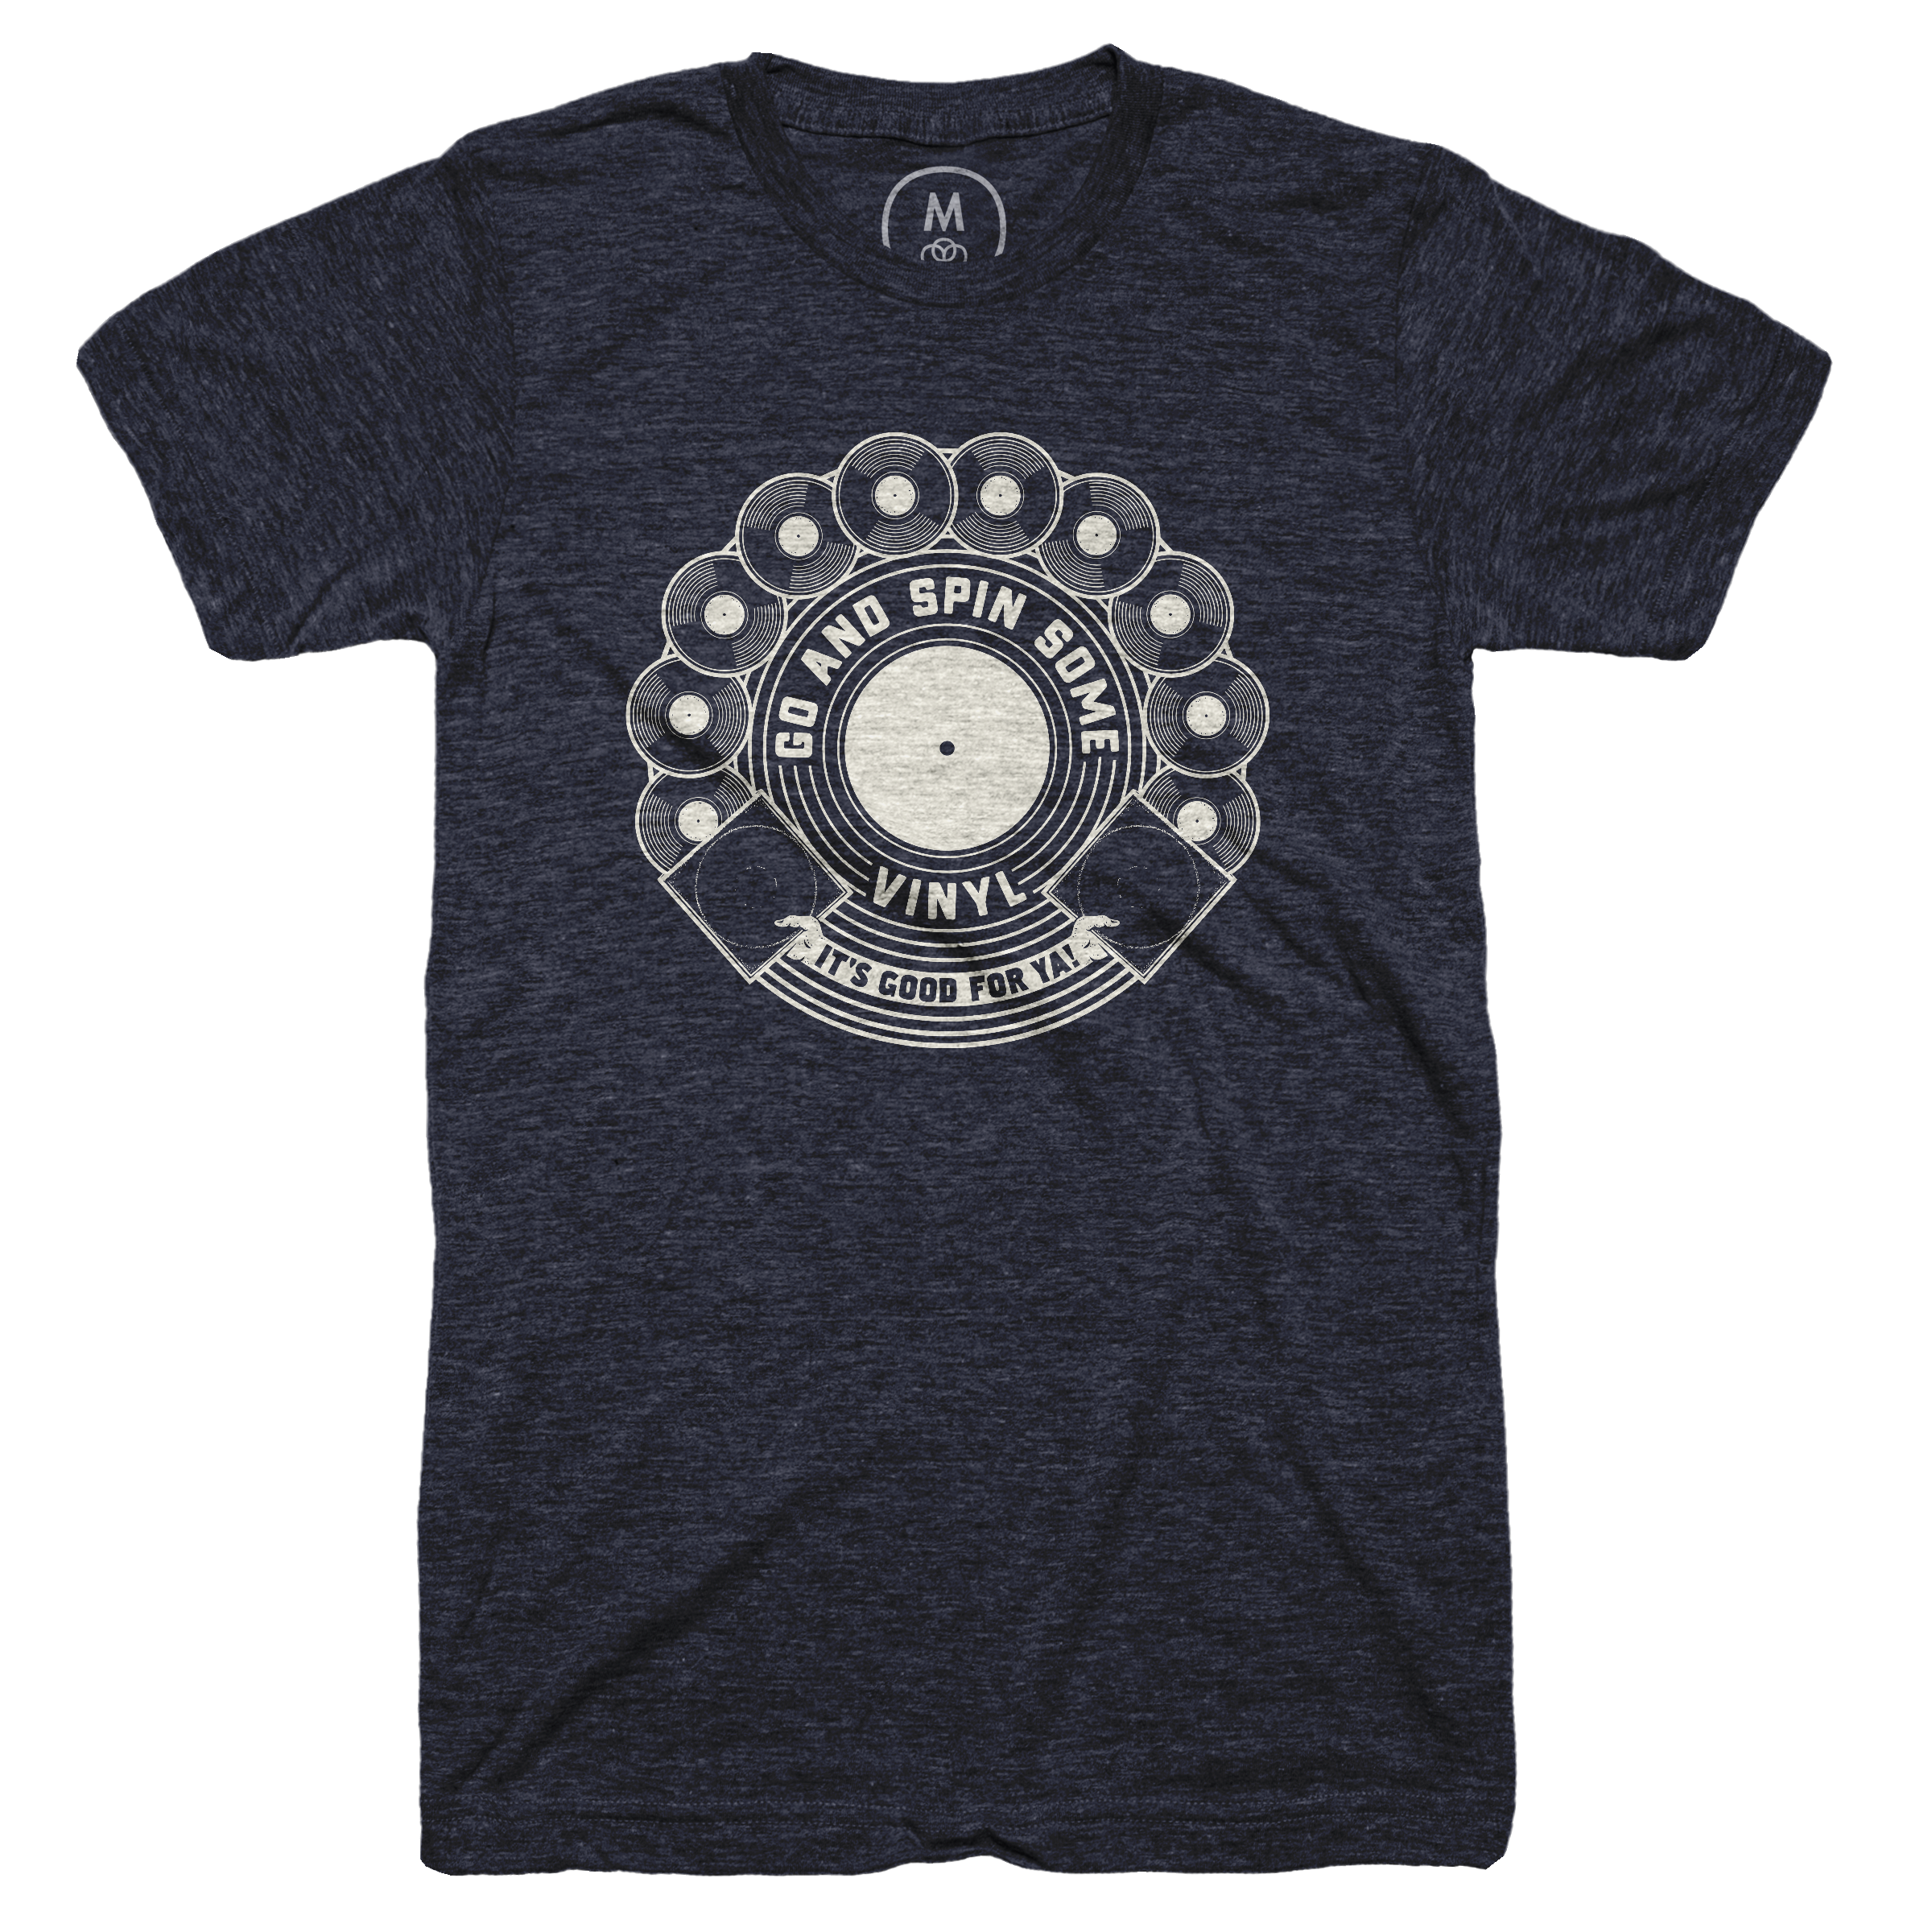 Vinyl's Good For Ya! Vintage Navy (Men's)